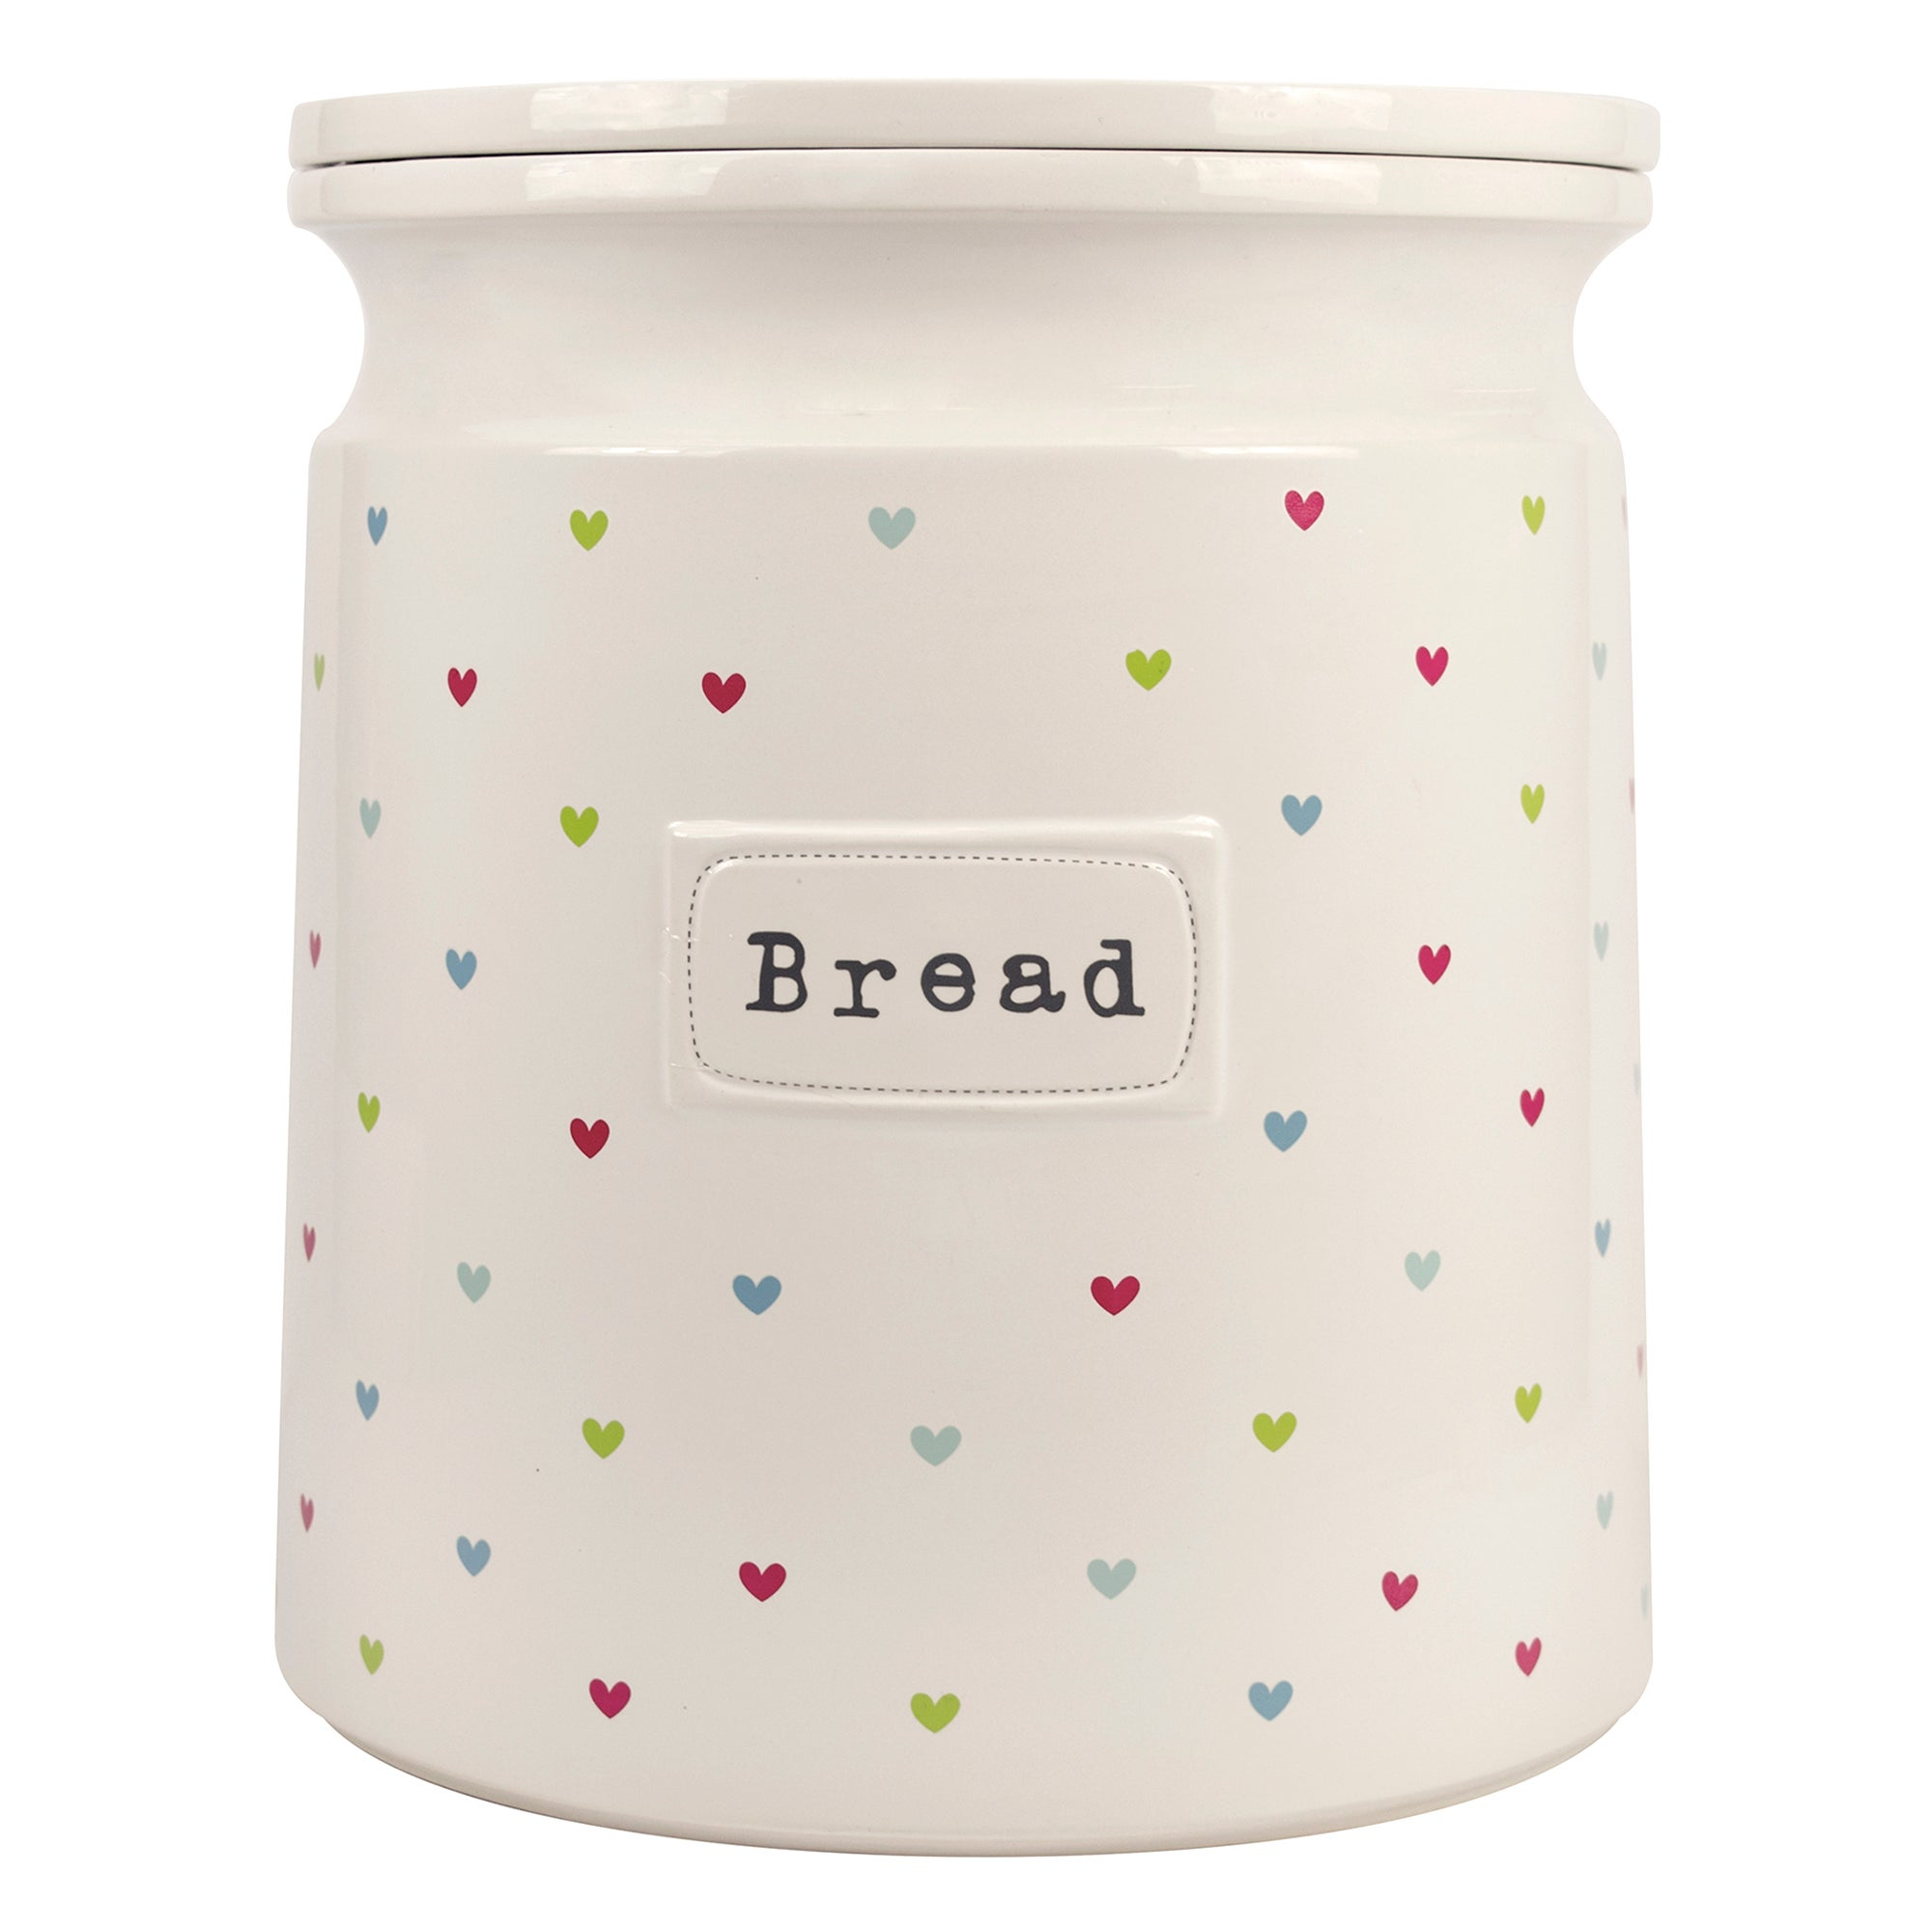 Cottage Heart Collection Bread Canister